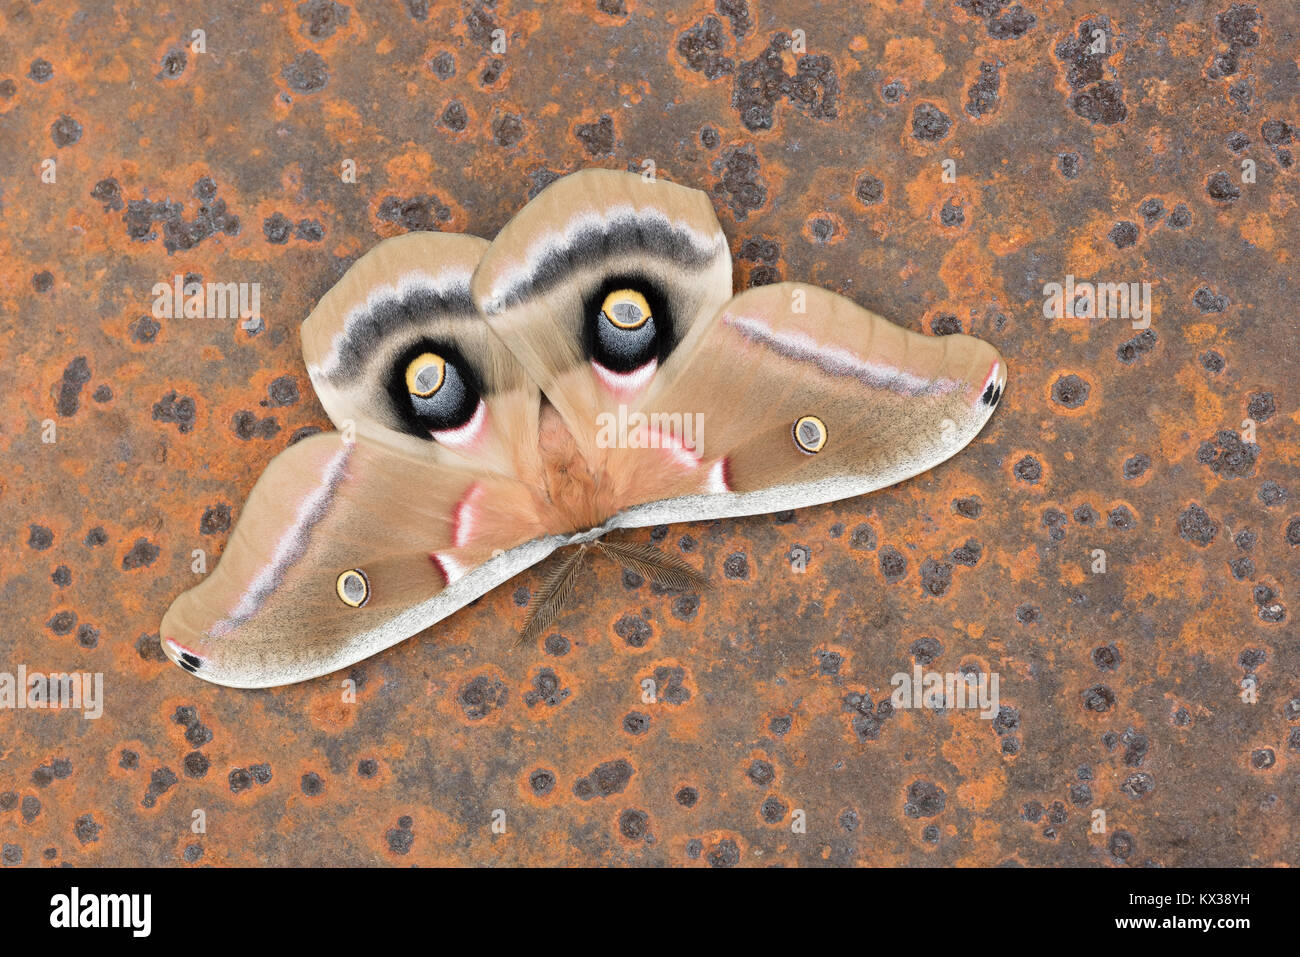 Polyphemus Moth in startle display mode on rusted old sawmill blade abandoned in forest. Dauphin County, Pennsylvania, - Stock Image